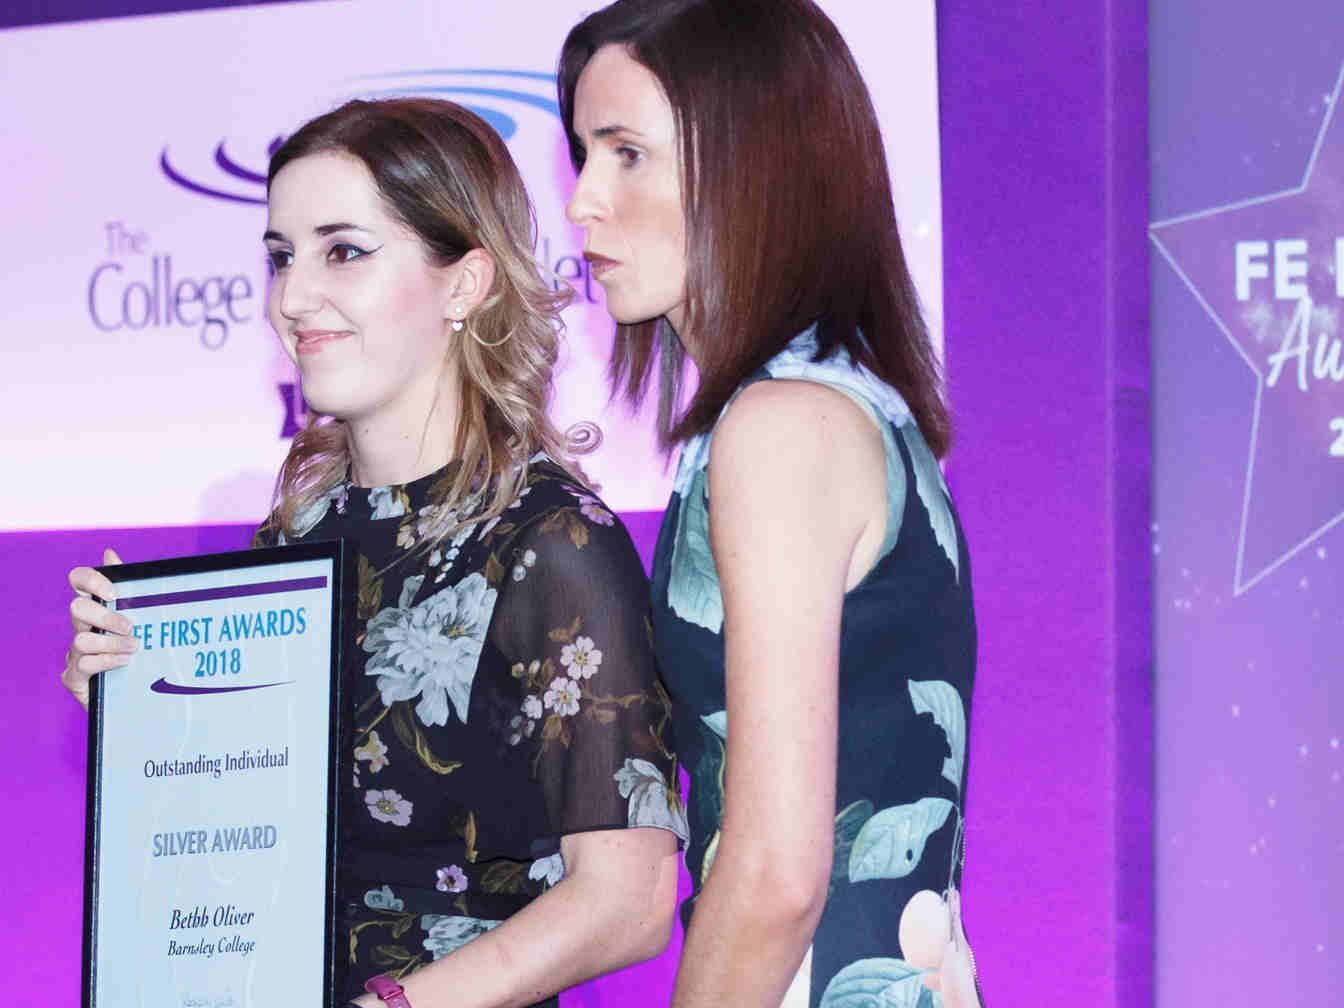 FE First Awards 2018, College Marketing Network, Bethh Oliver, Barnsley College